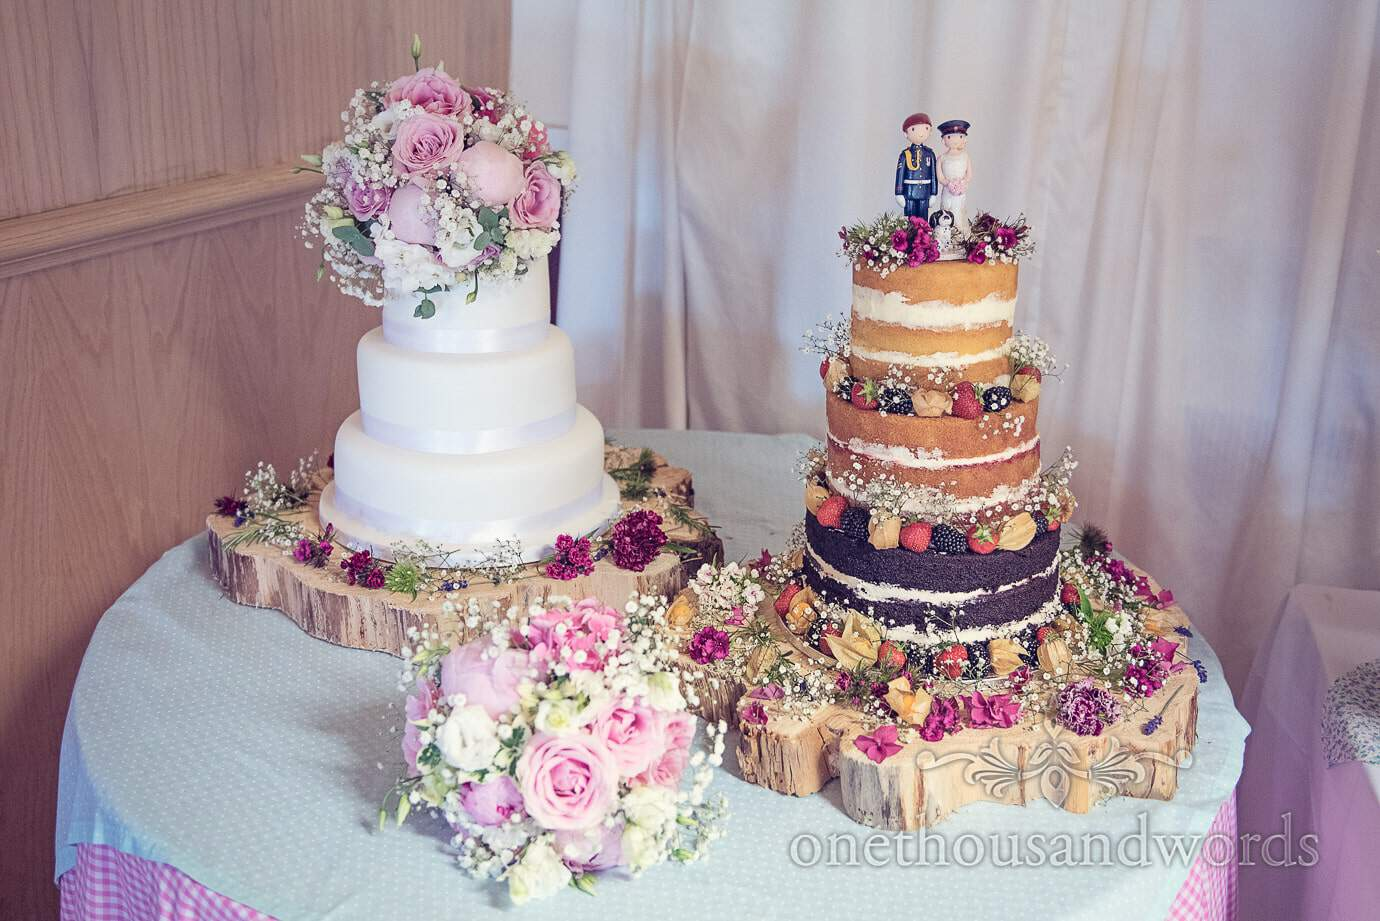 Two different wedding cakes with flowers at one wedding